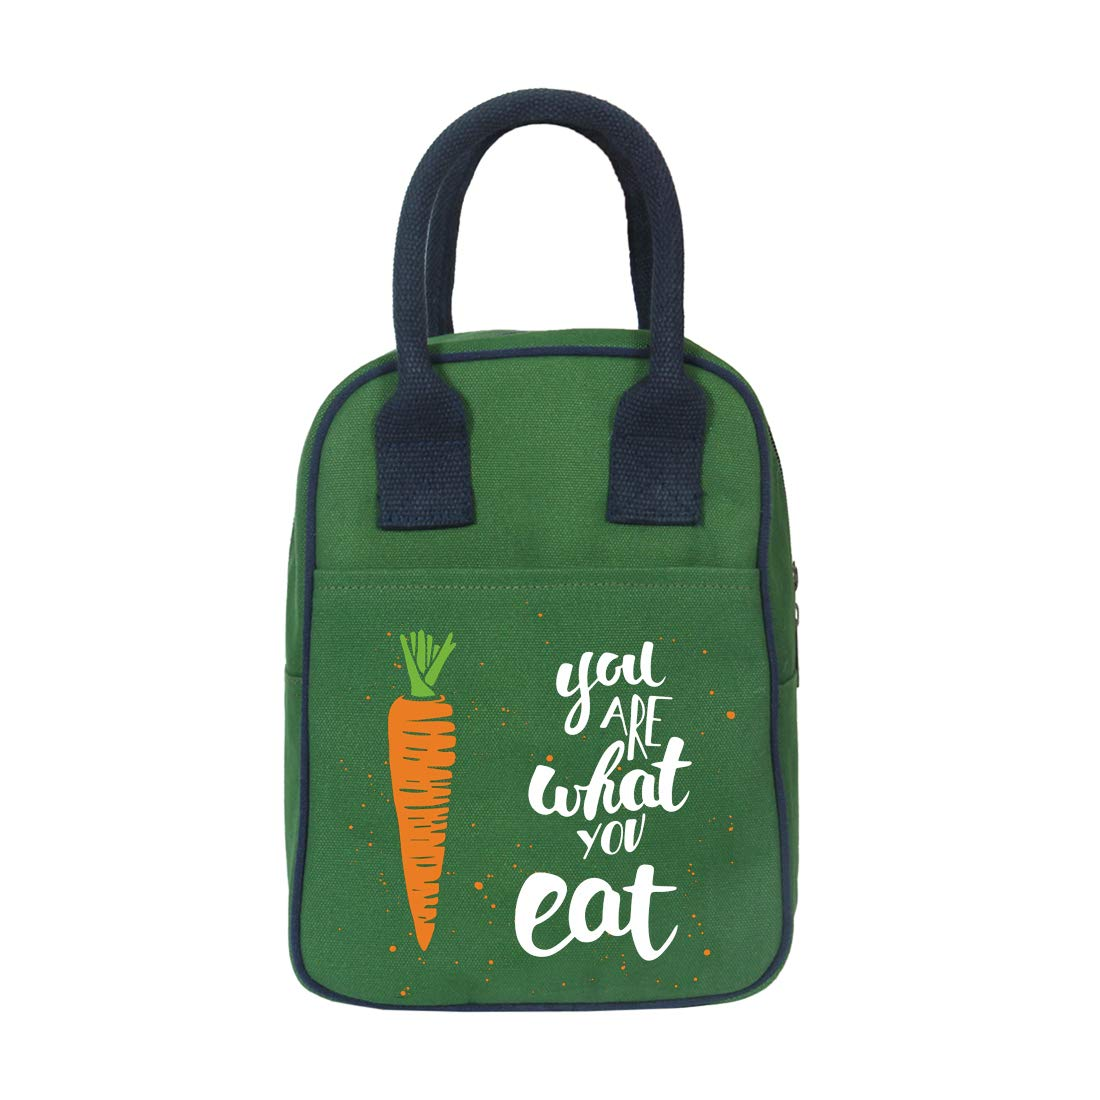 EcoRight Insulated Lunch Bags for Women, Lunch Box for men, Kids, Adults, Eco Friendly Reusable Cooler Bag, Lunch Pail for Work, School, Office, 8L | You Are What You Eat | 0706S29